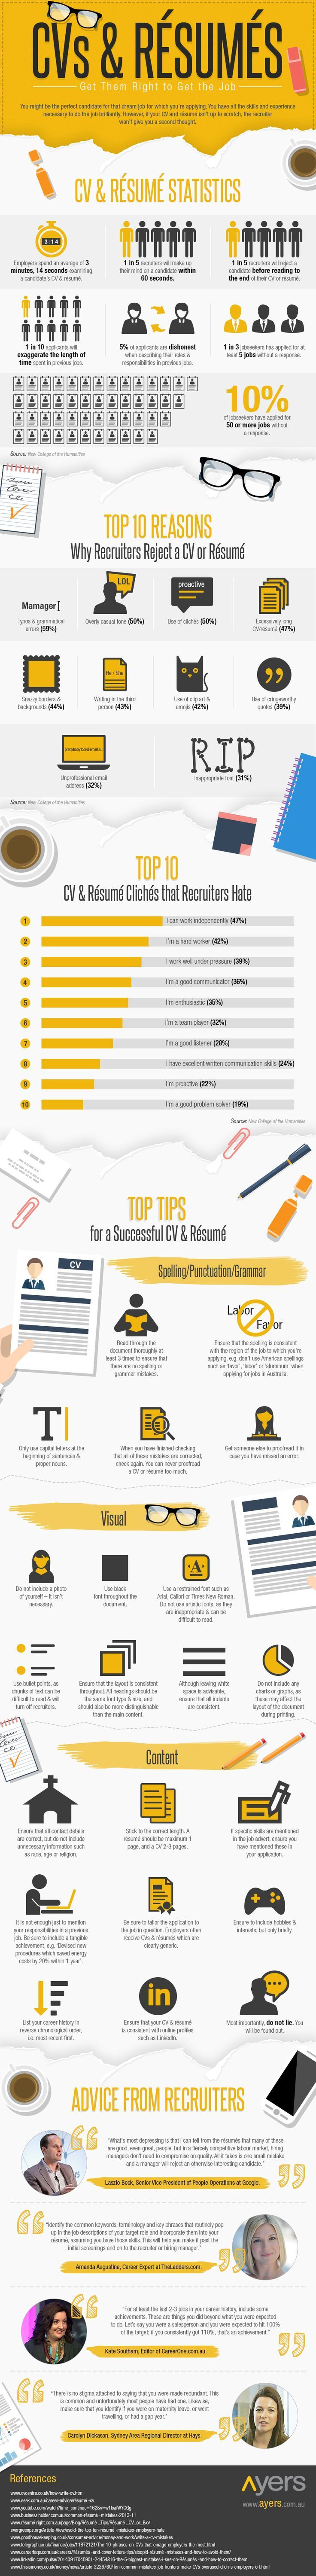 best images about infographic visual resumes creating a winning resume is vital to making a great first impression on potential employers your resume is the document that will help you present a